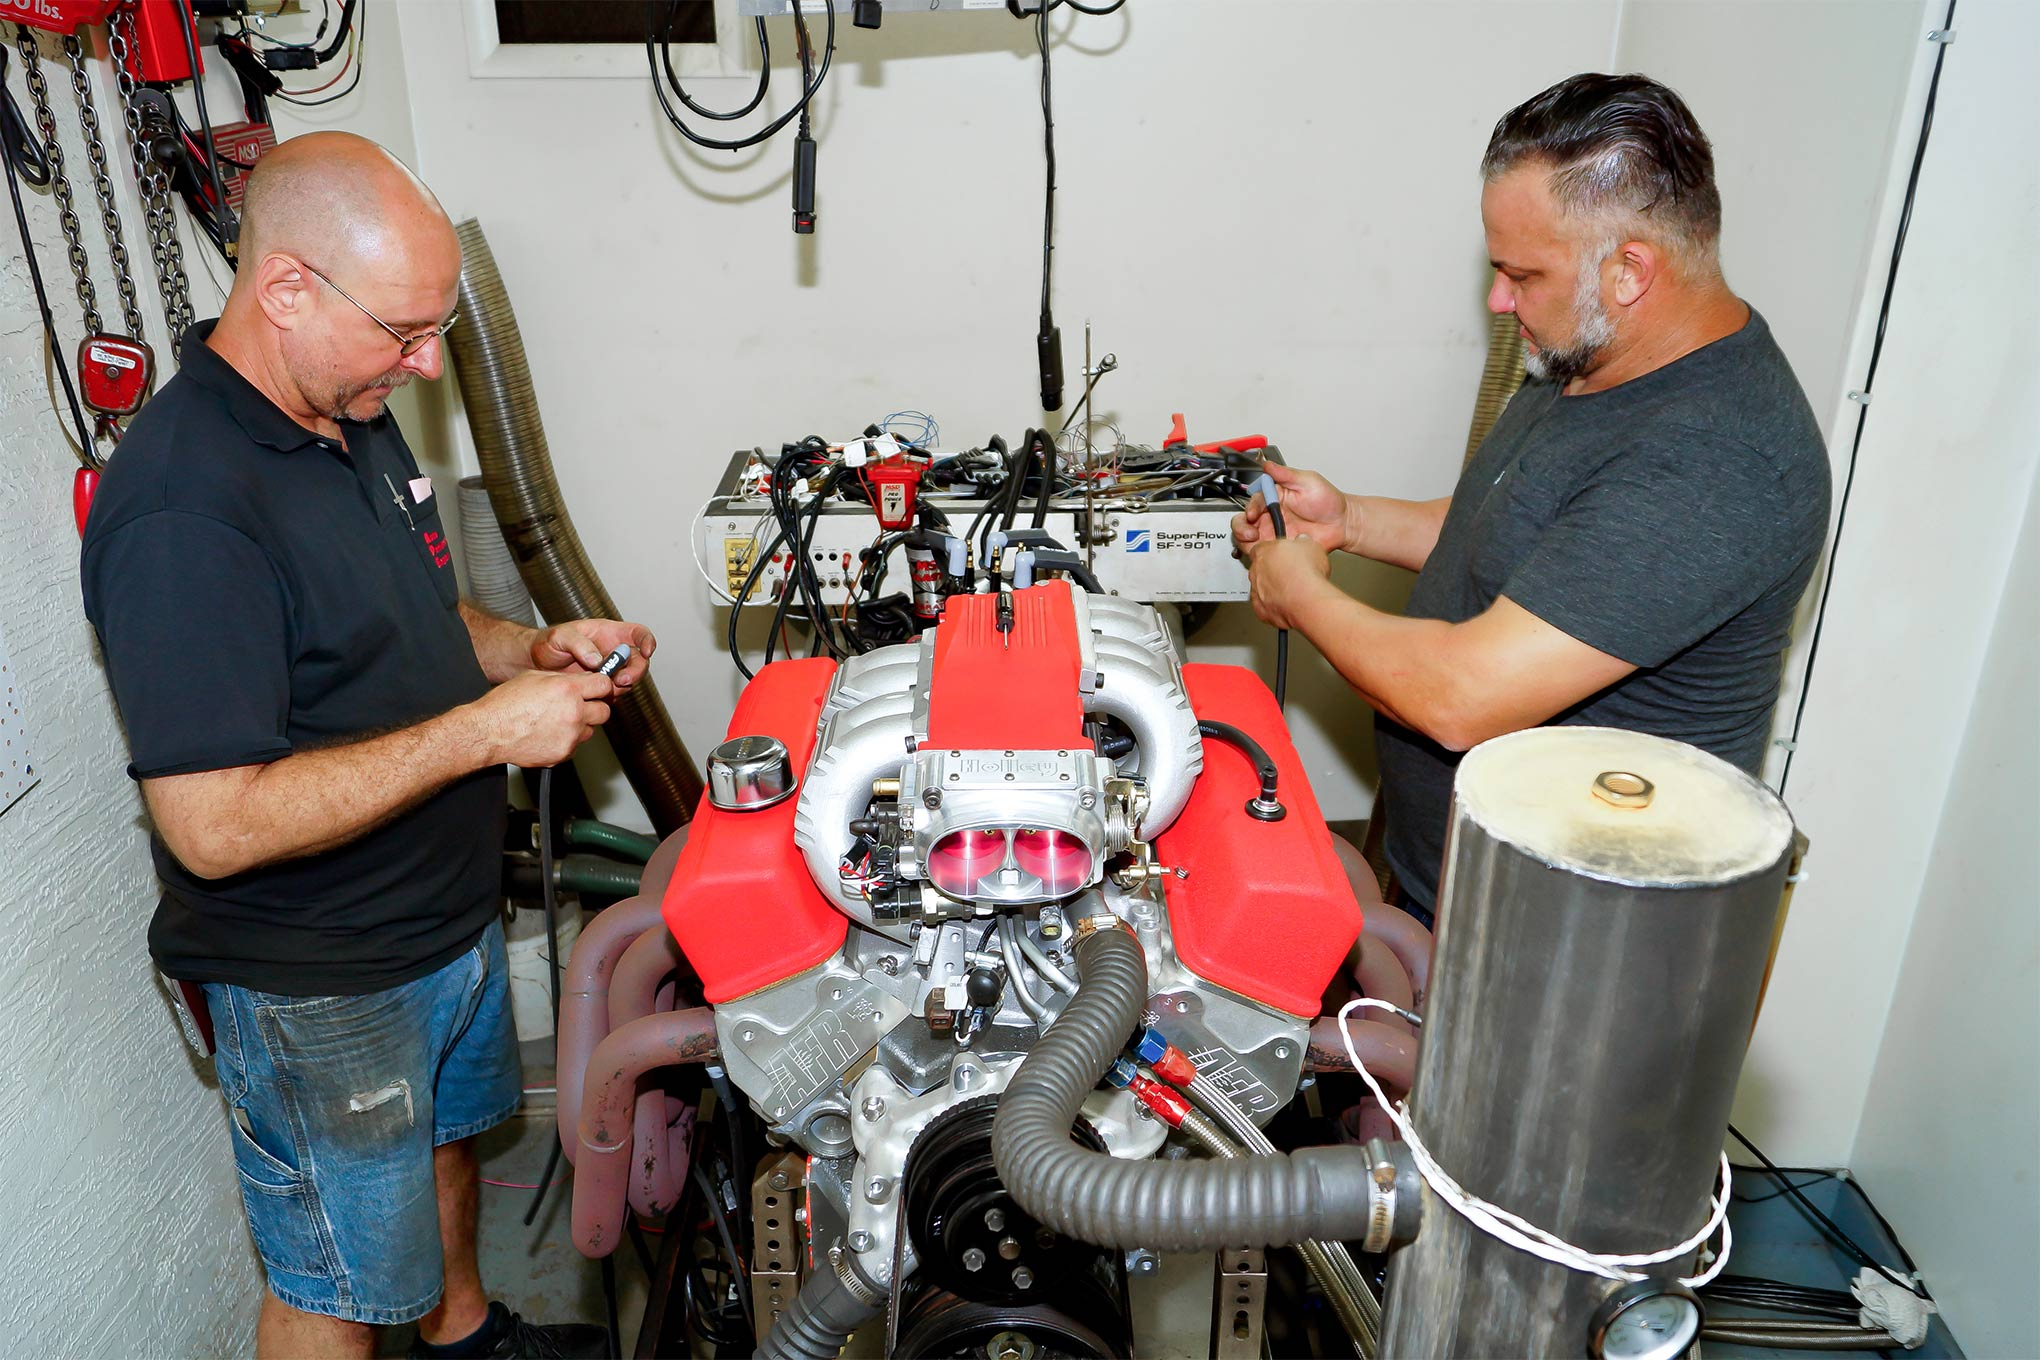 With the new 383 assembled, it was off to Automotive Performance Engineering in Auburndale, Florida, where proprietor Kevin Willis (at left) would put the stroker through its paces. In addition to building the engine, Antivenom's Greg Lovell (at right) assisted in getting the engine mounted up and took care of last-minute details like the new spark-plug wires.